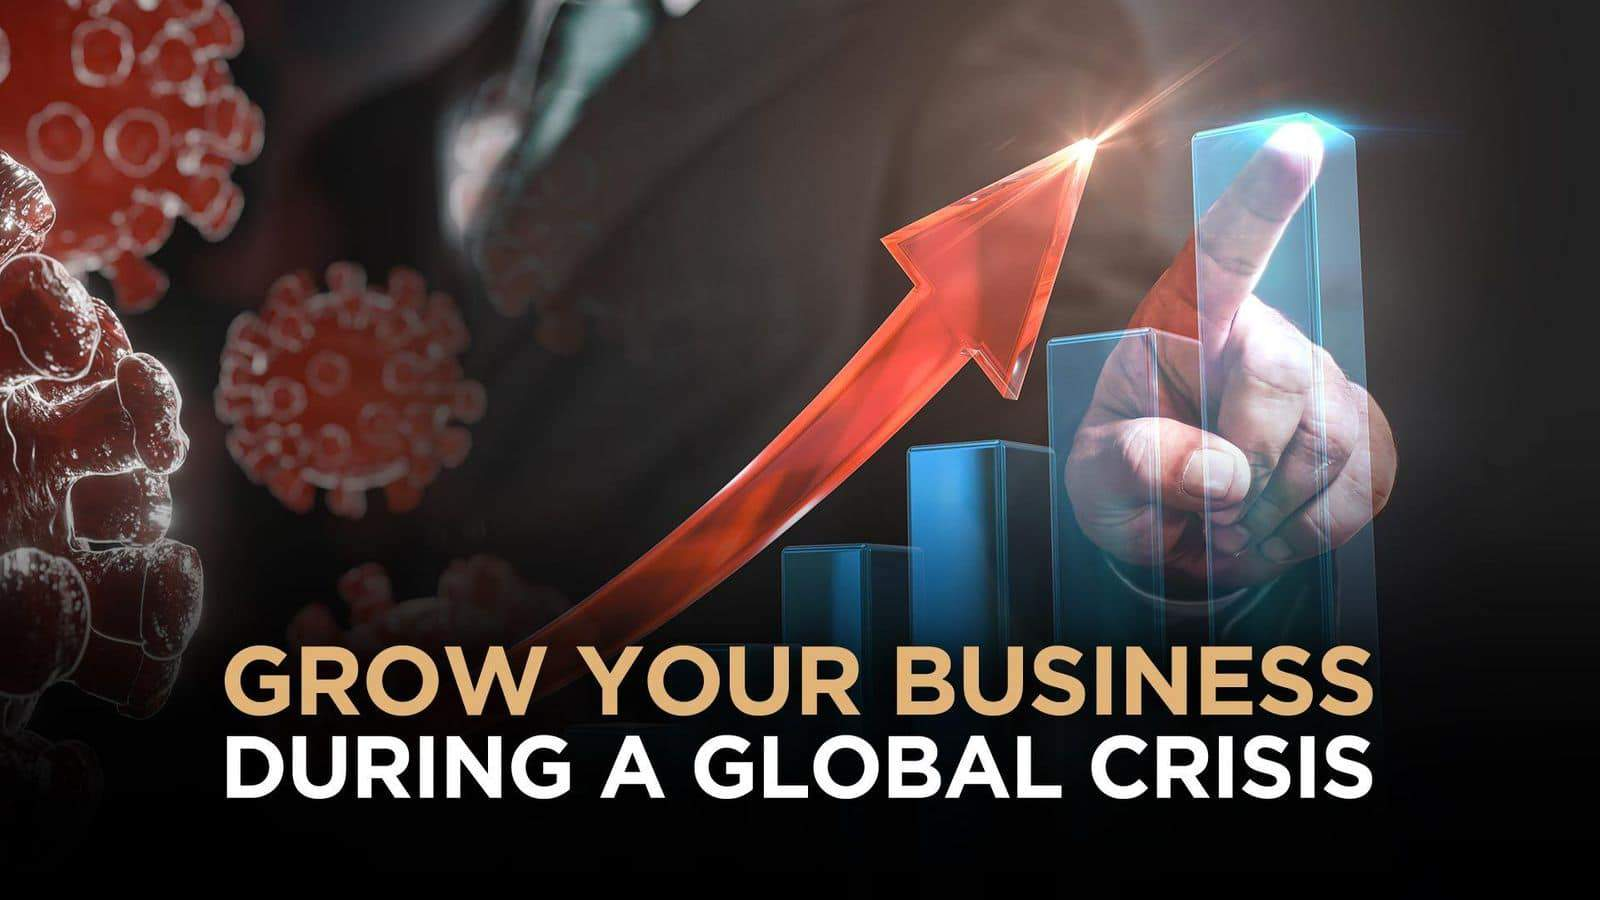 Grow your business during a global crisis of Covid